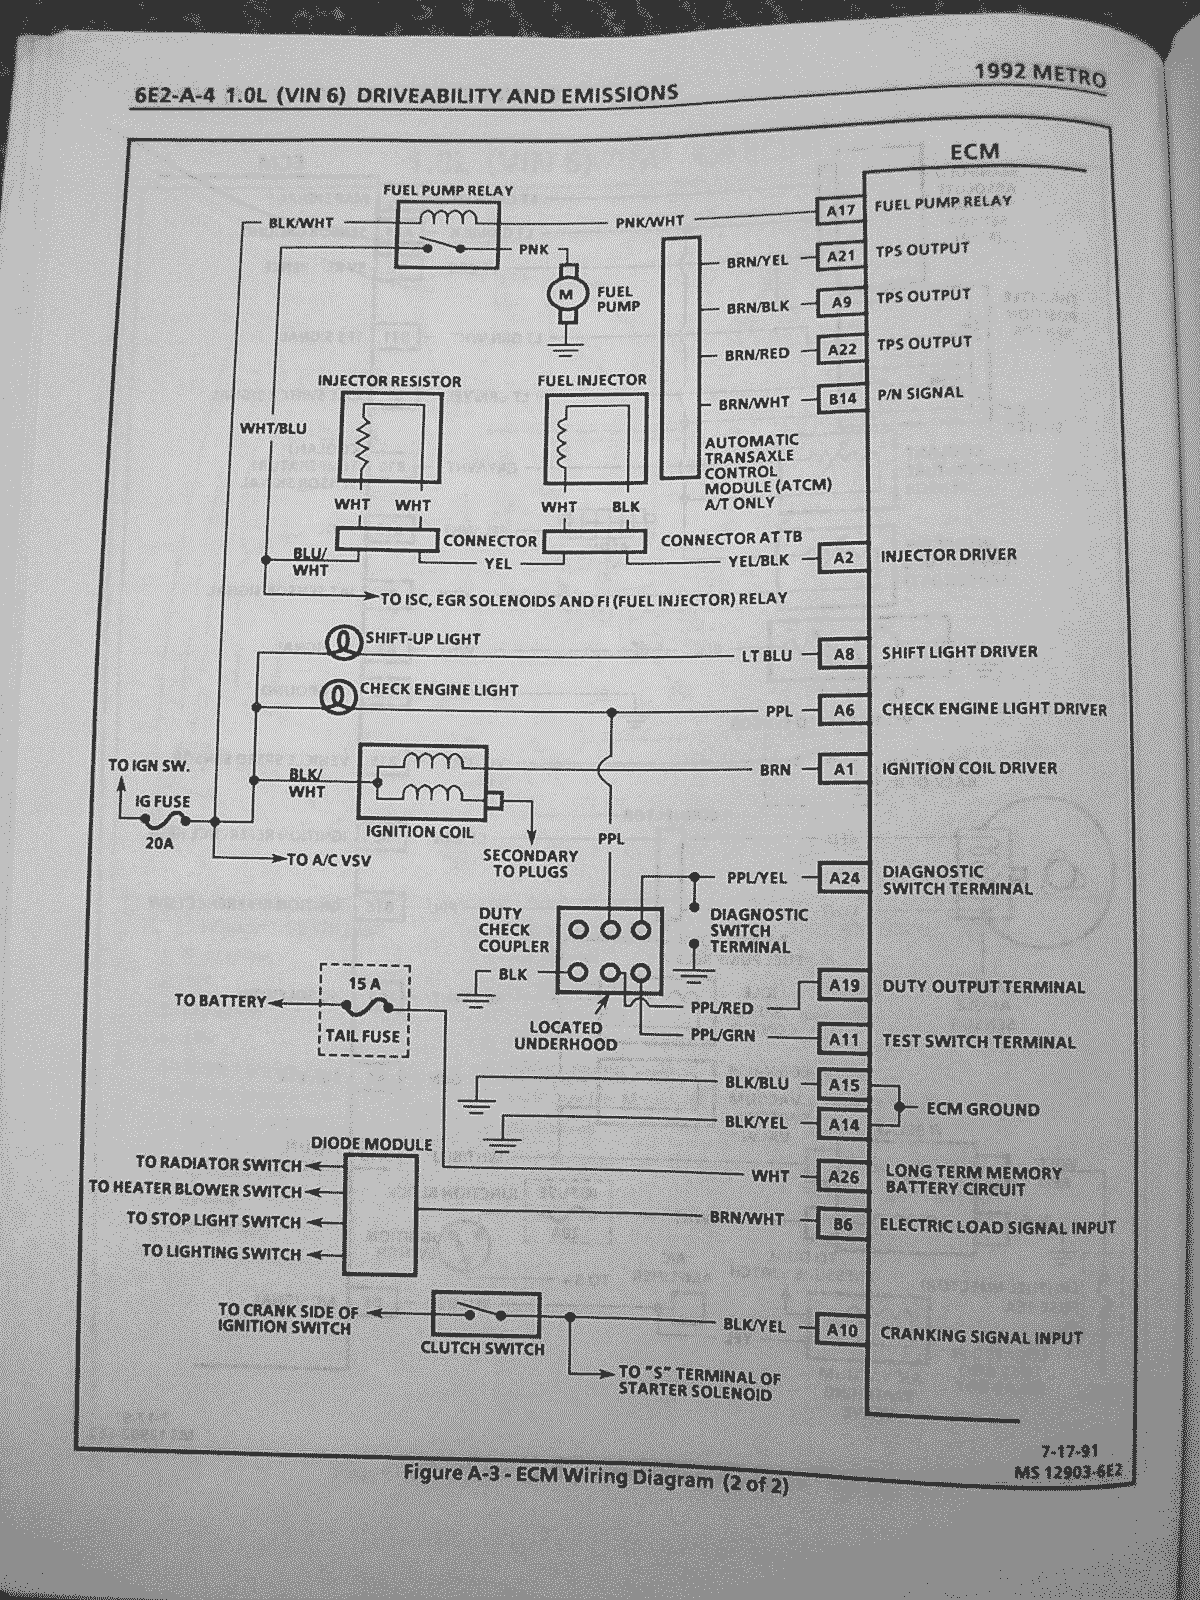 6e2 a 4 geo metro and suzuki swift wiring diagrams metroxfi com 1992 geo metro fuse box diagram at eliteediting.co